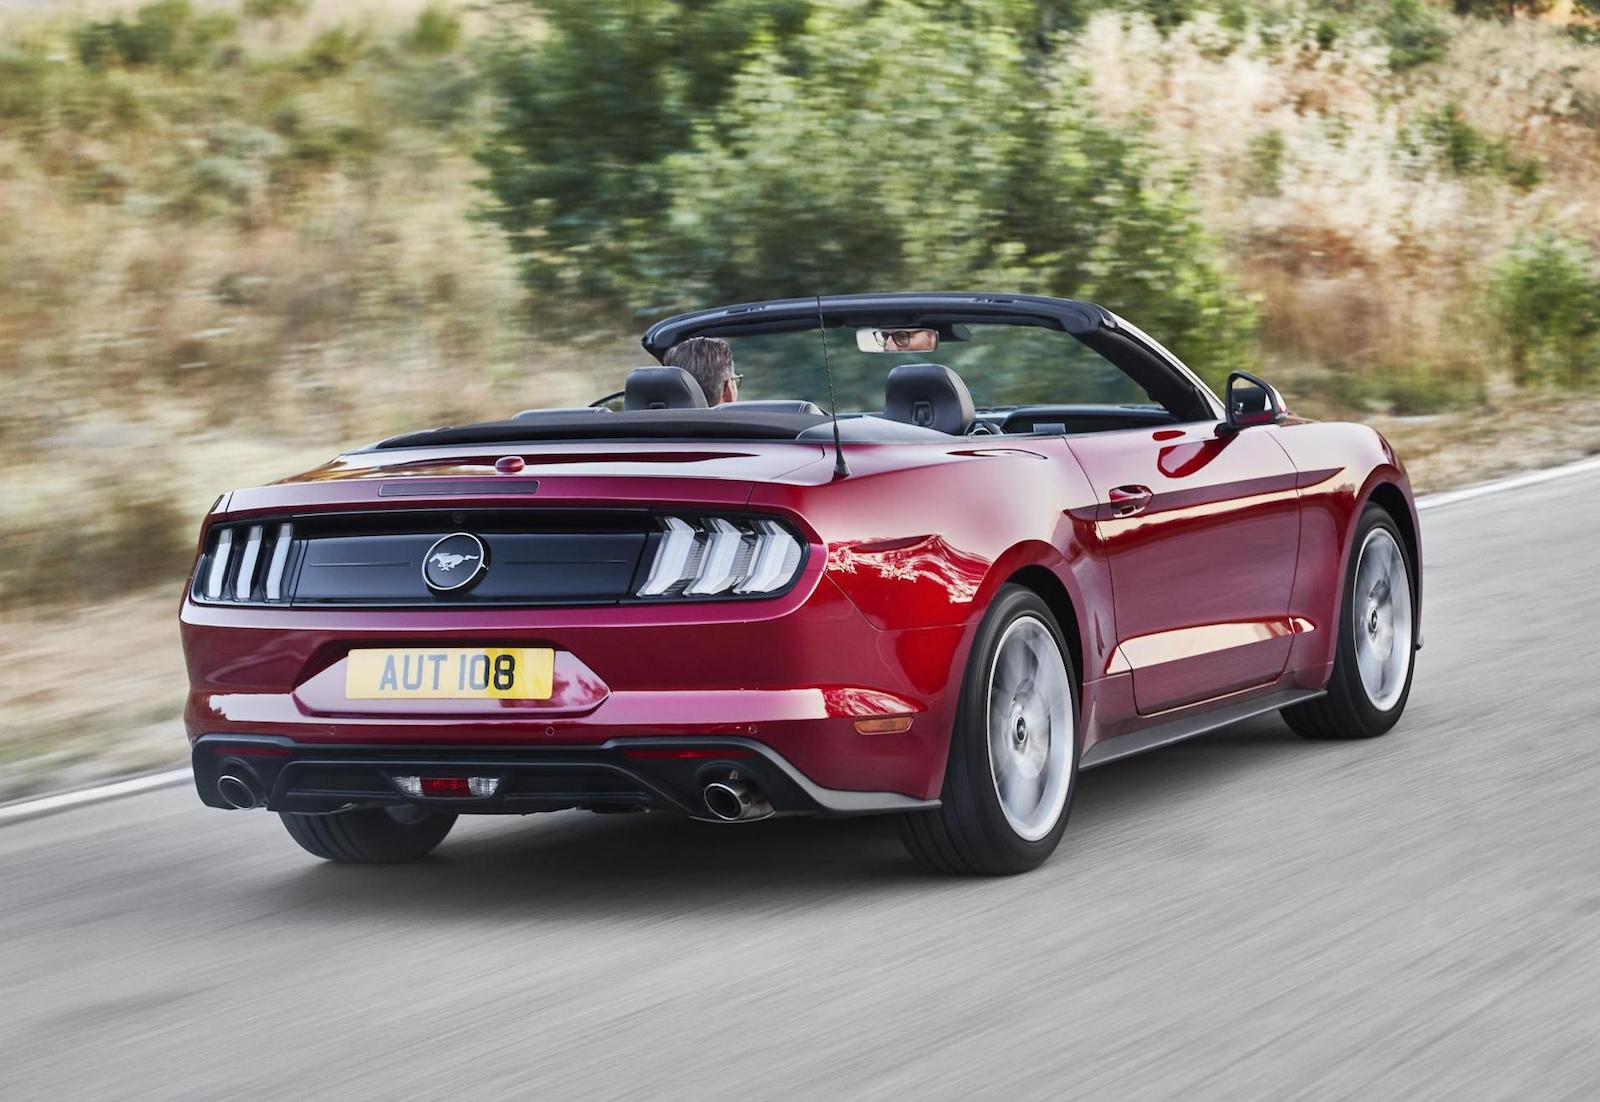 Ford Mustang Gt Convertible 2017 >> Euro-spec 2018 Ford Mustang unveiled, more power for V8 | PerformanceDrive